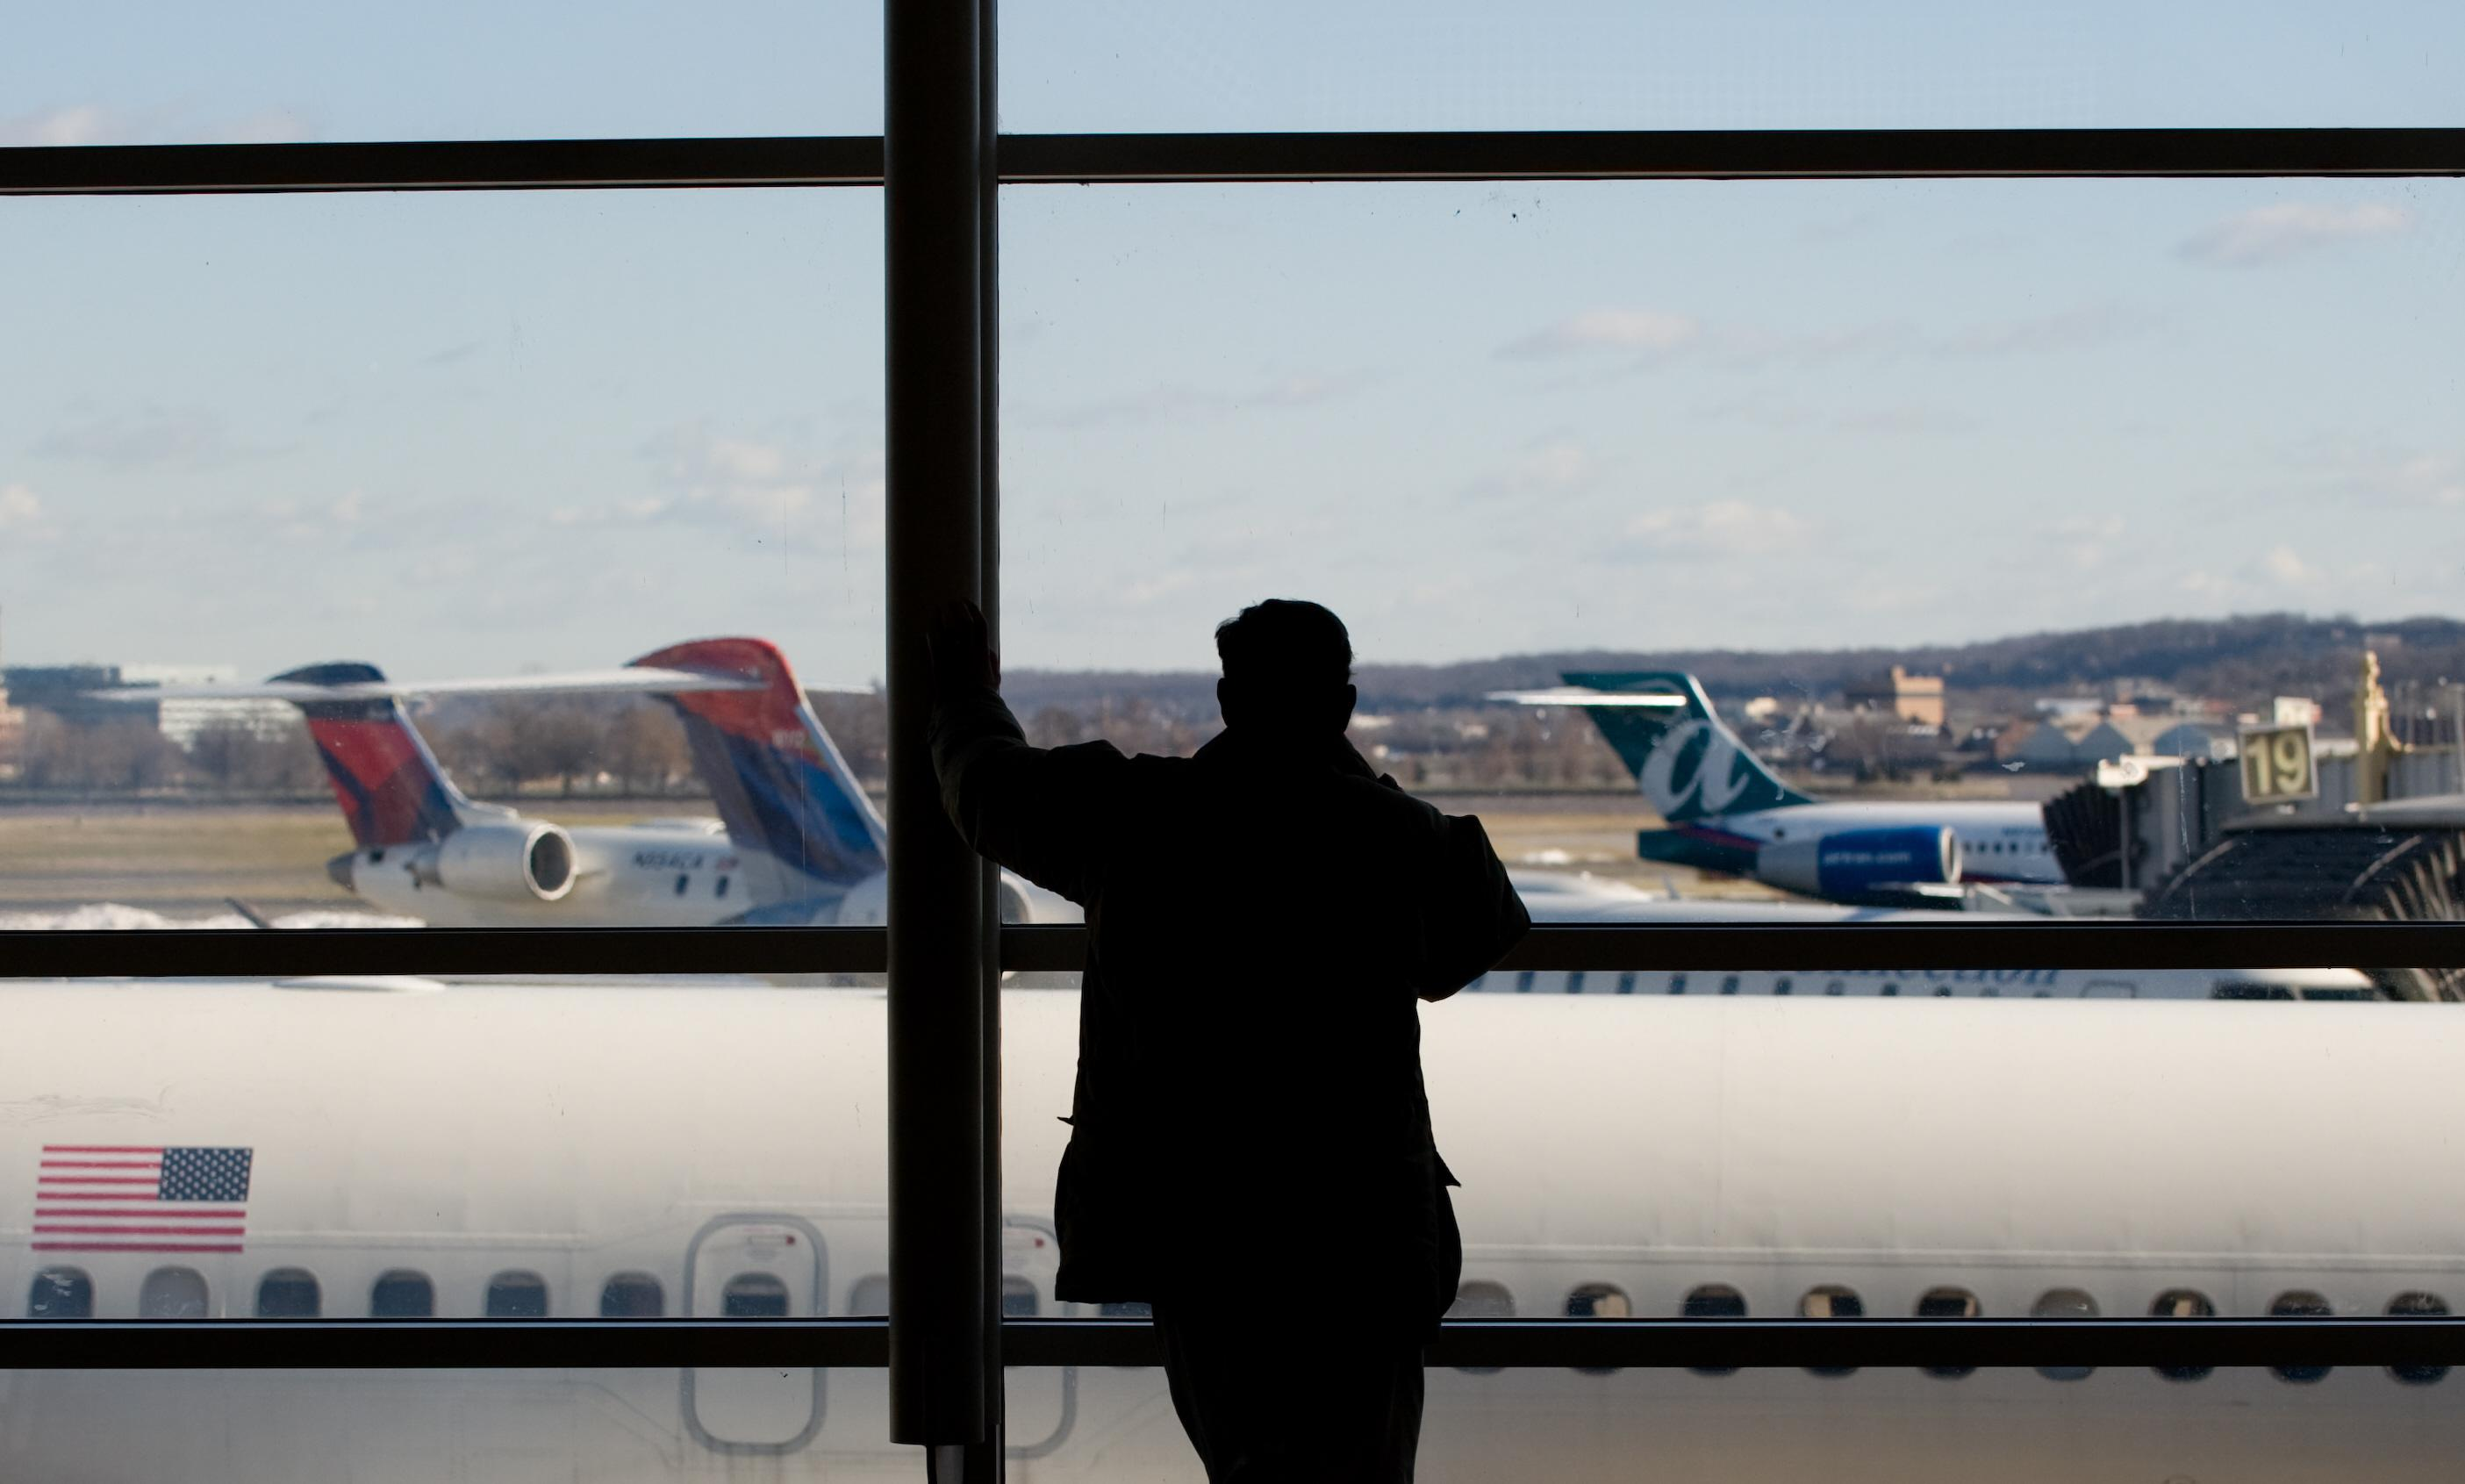 A man looks out the window at airplanes